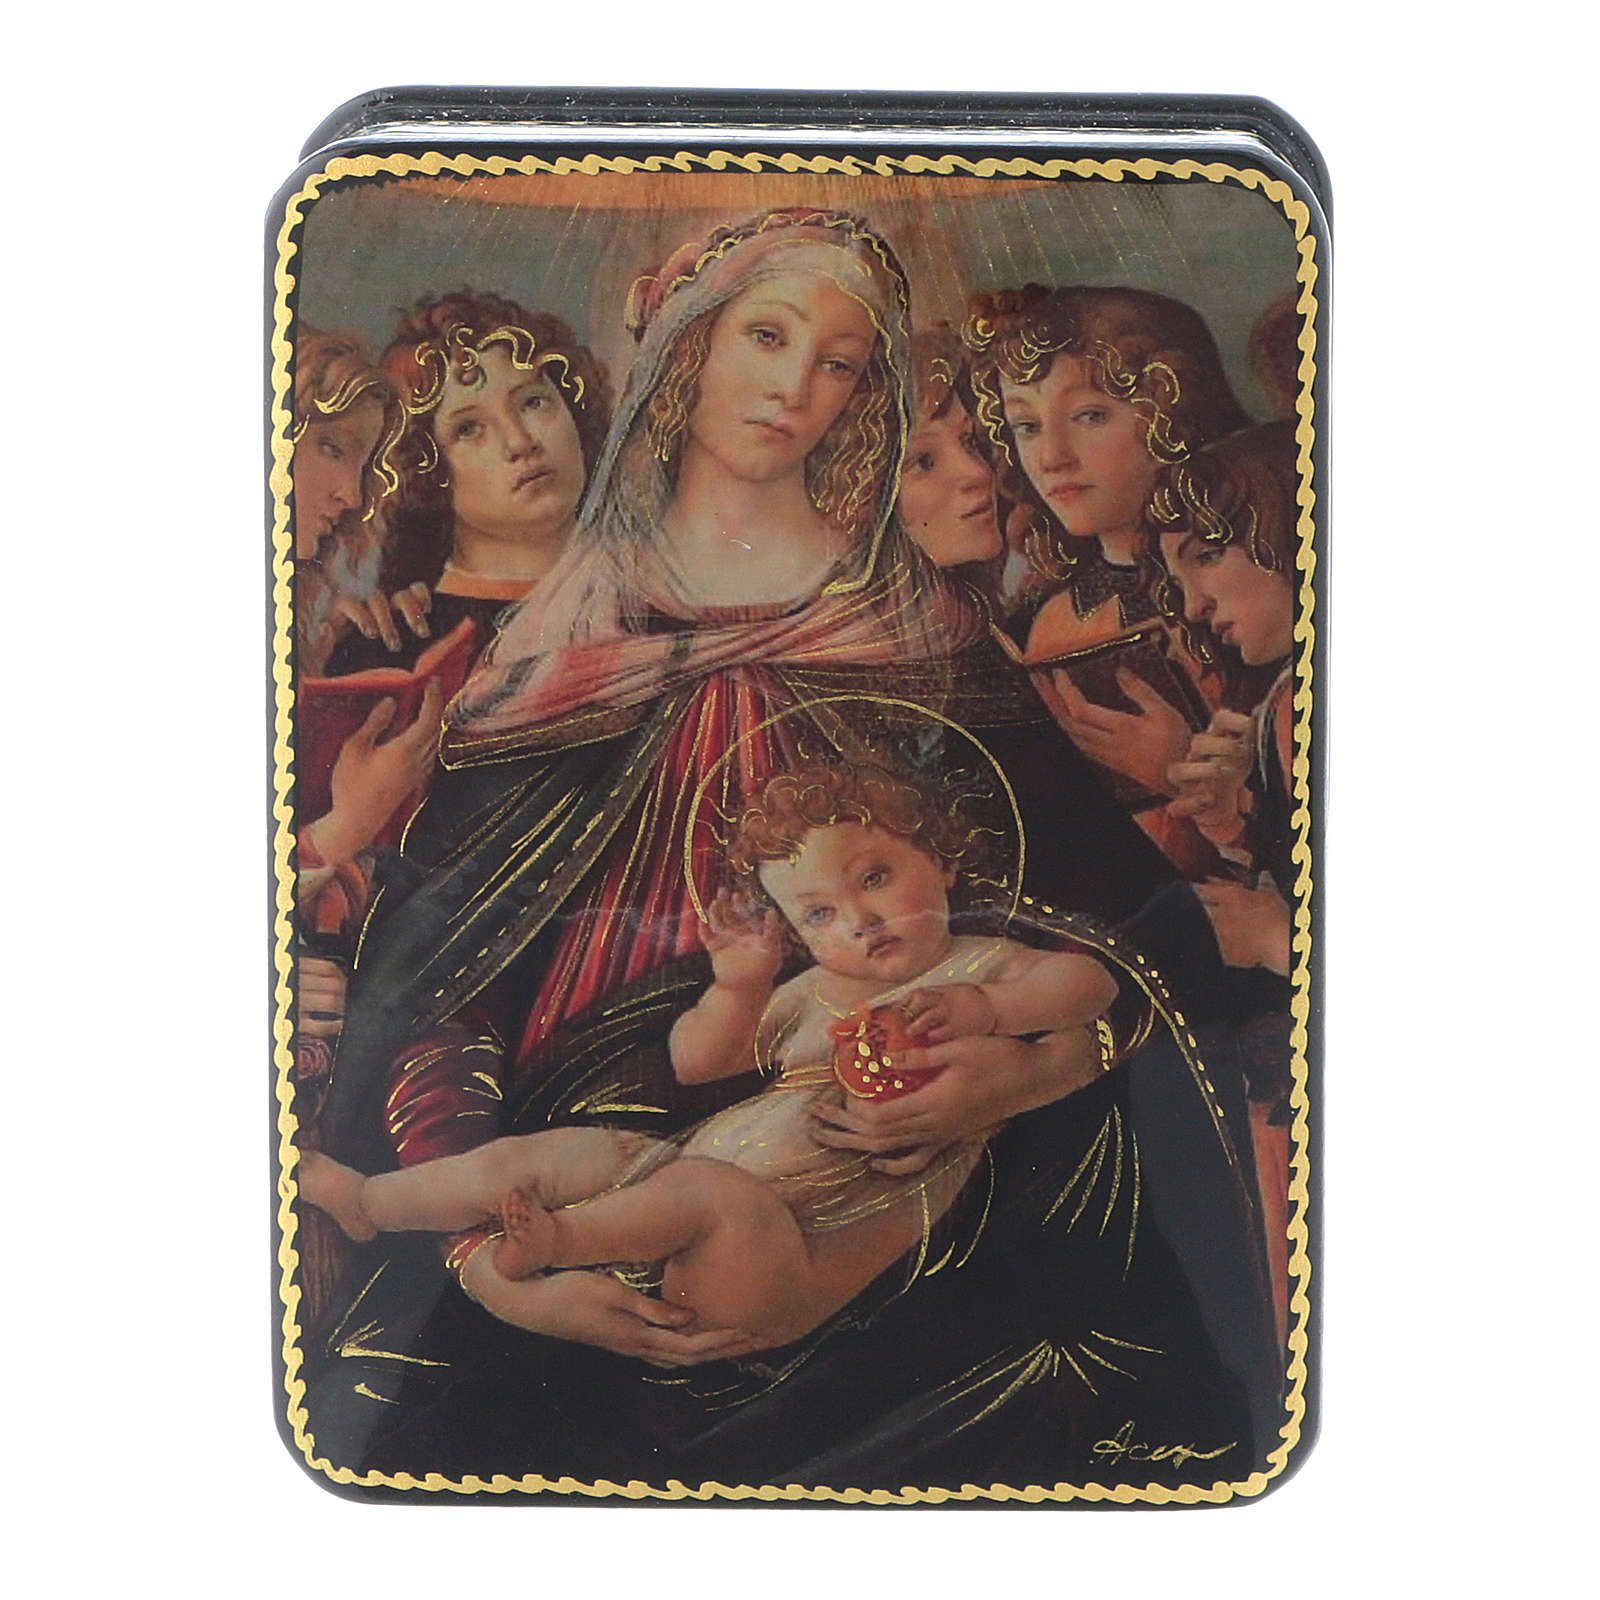 Russian papier machè and lacquer box The Birth of Christ Fedoskino style 11x8 cm 4